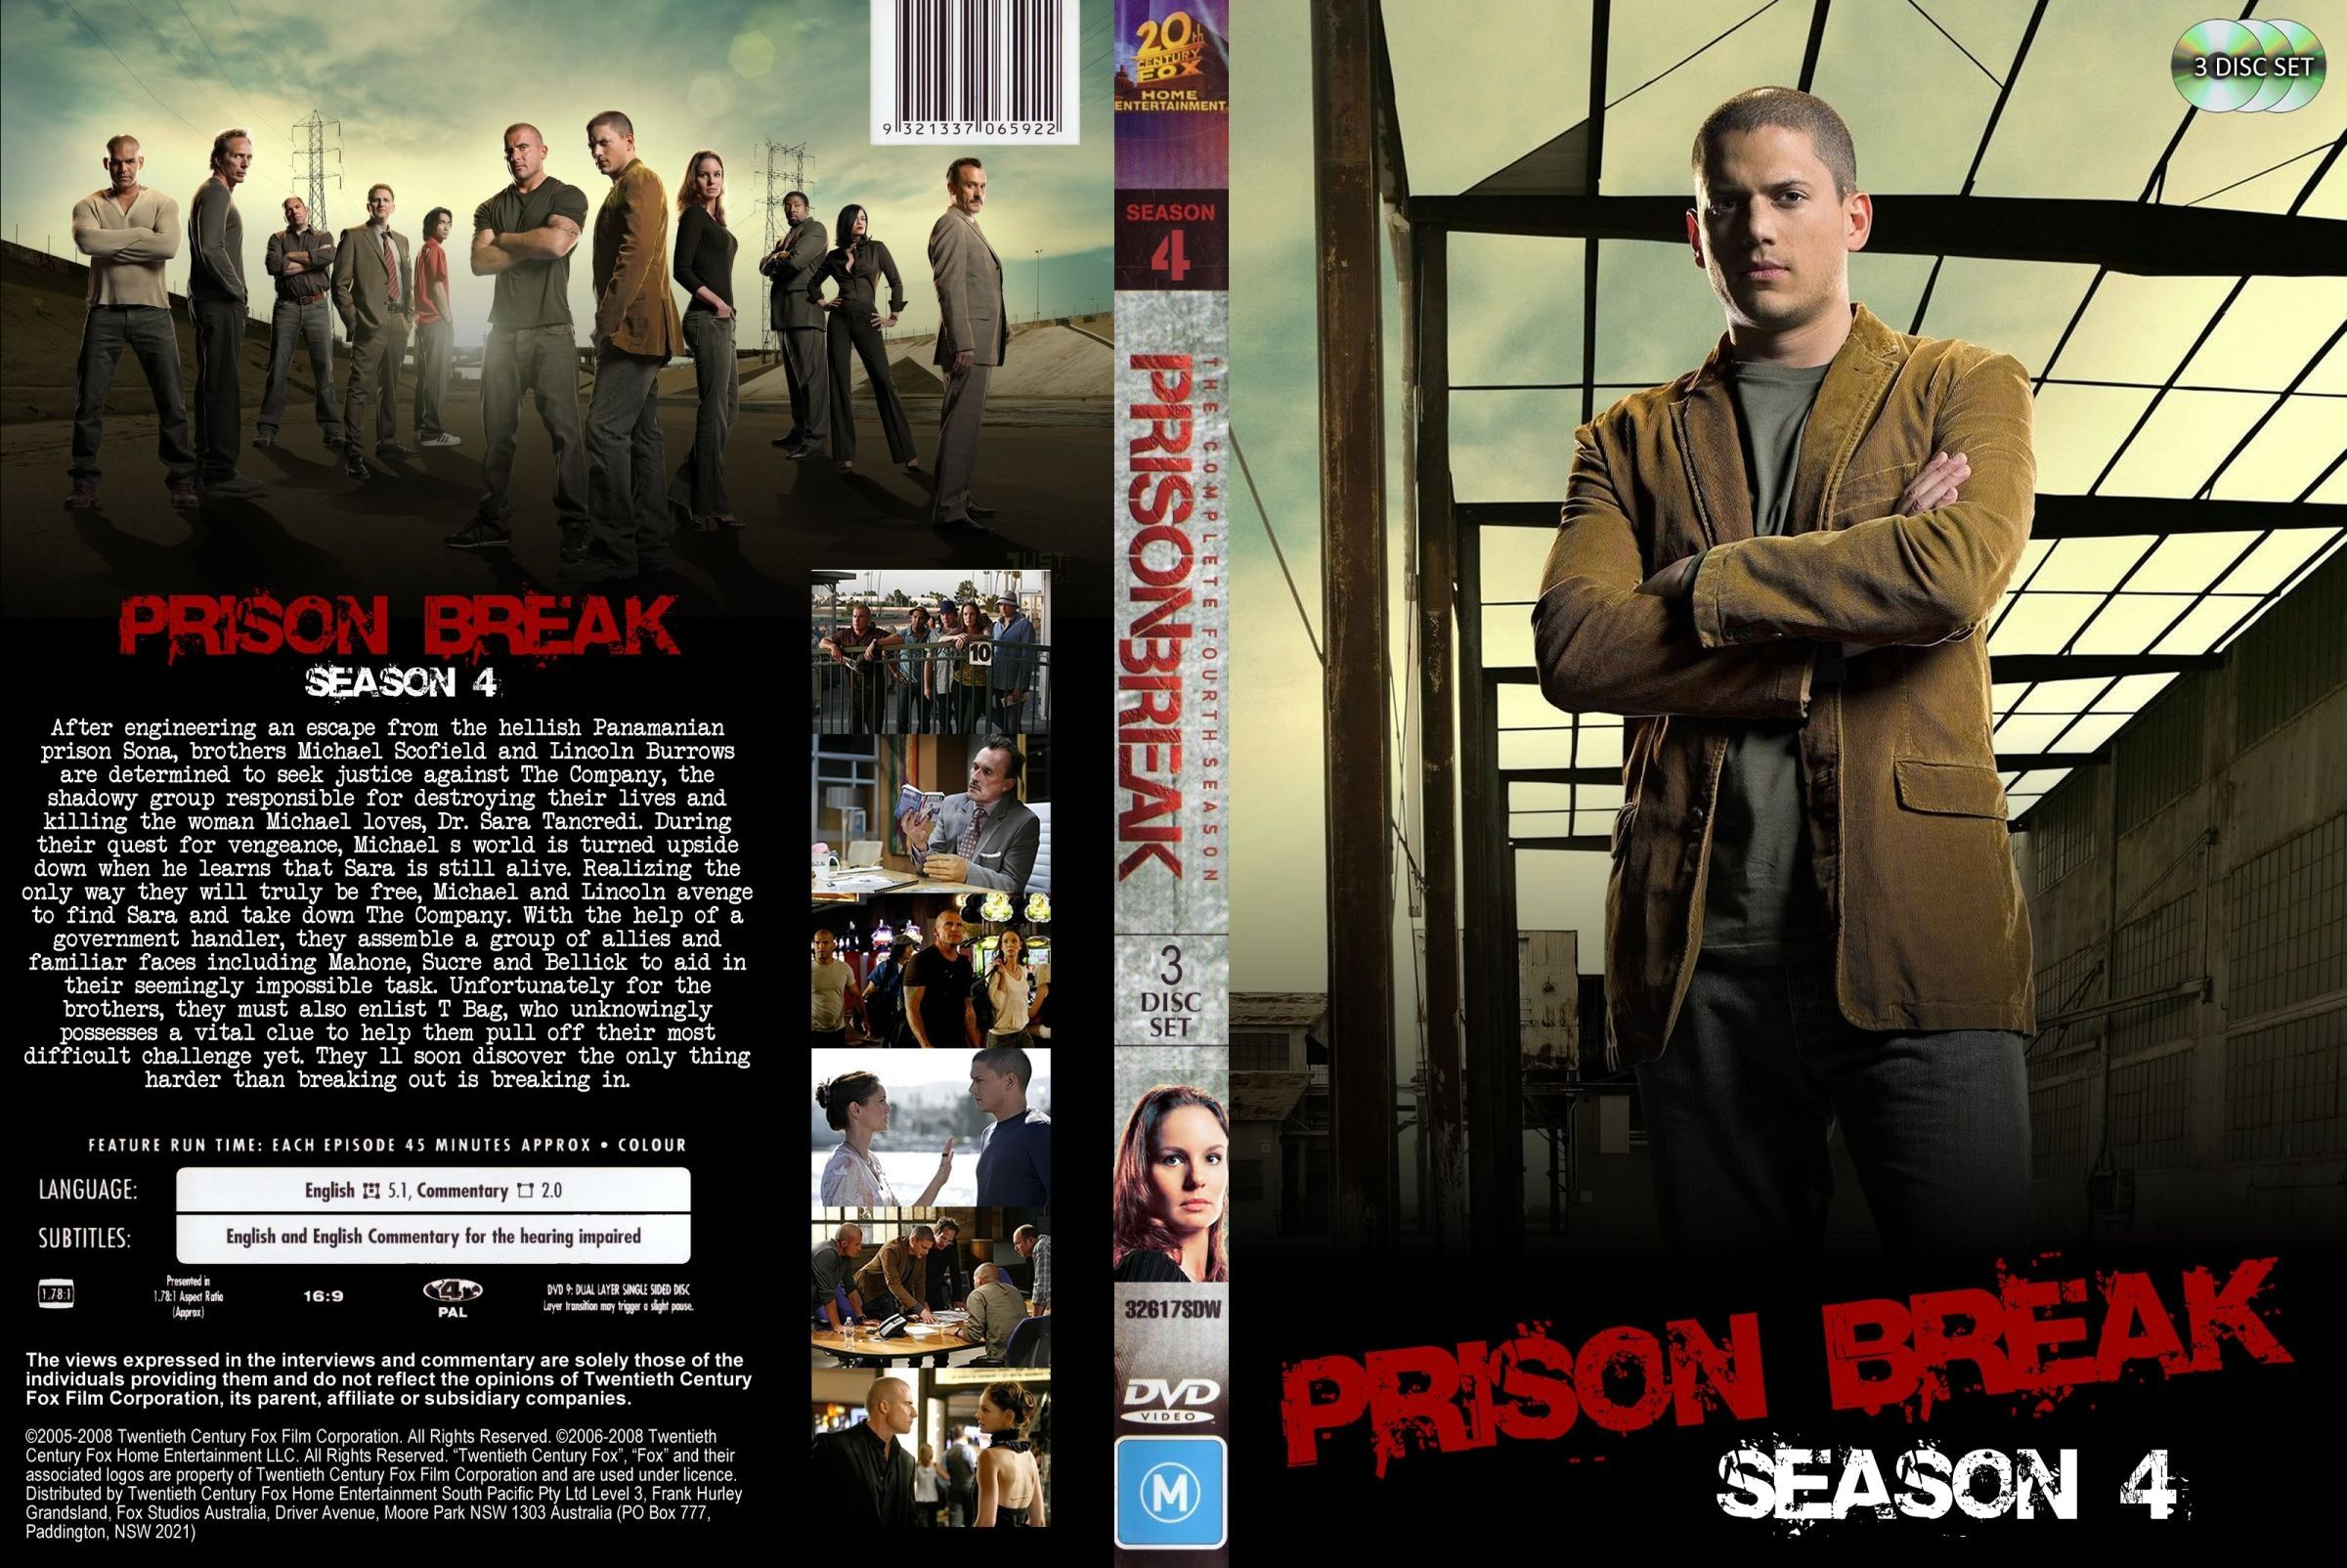 Prison Break Season 04 Dvd Us Custom Dvd Covers Cover Century Over 500 000 Album Art Covers For Free